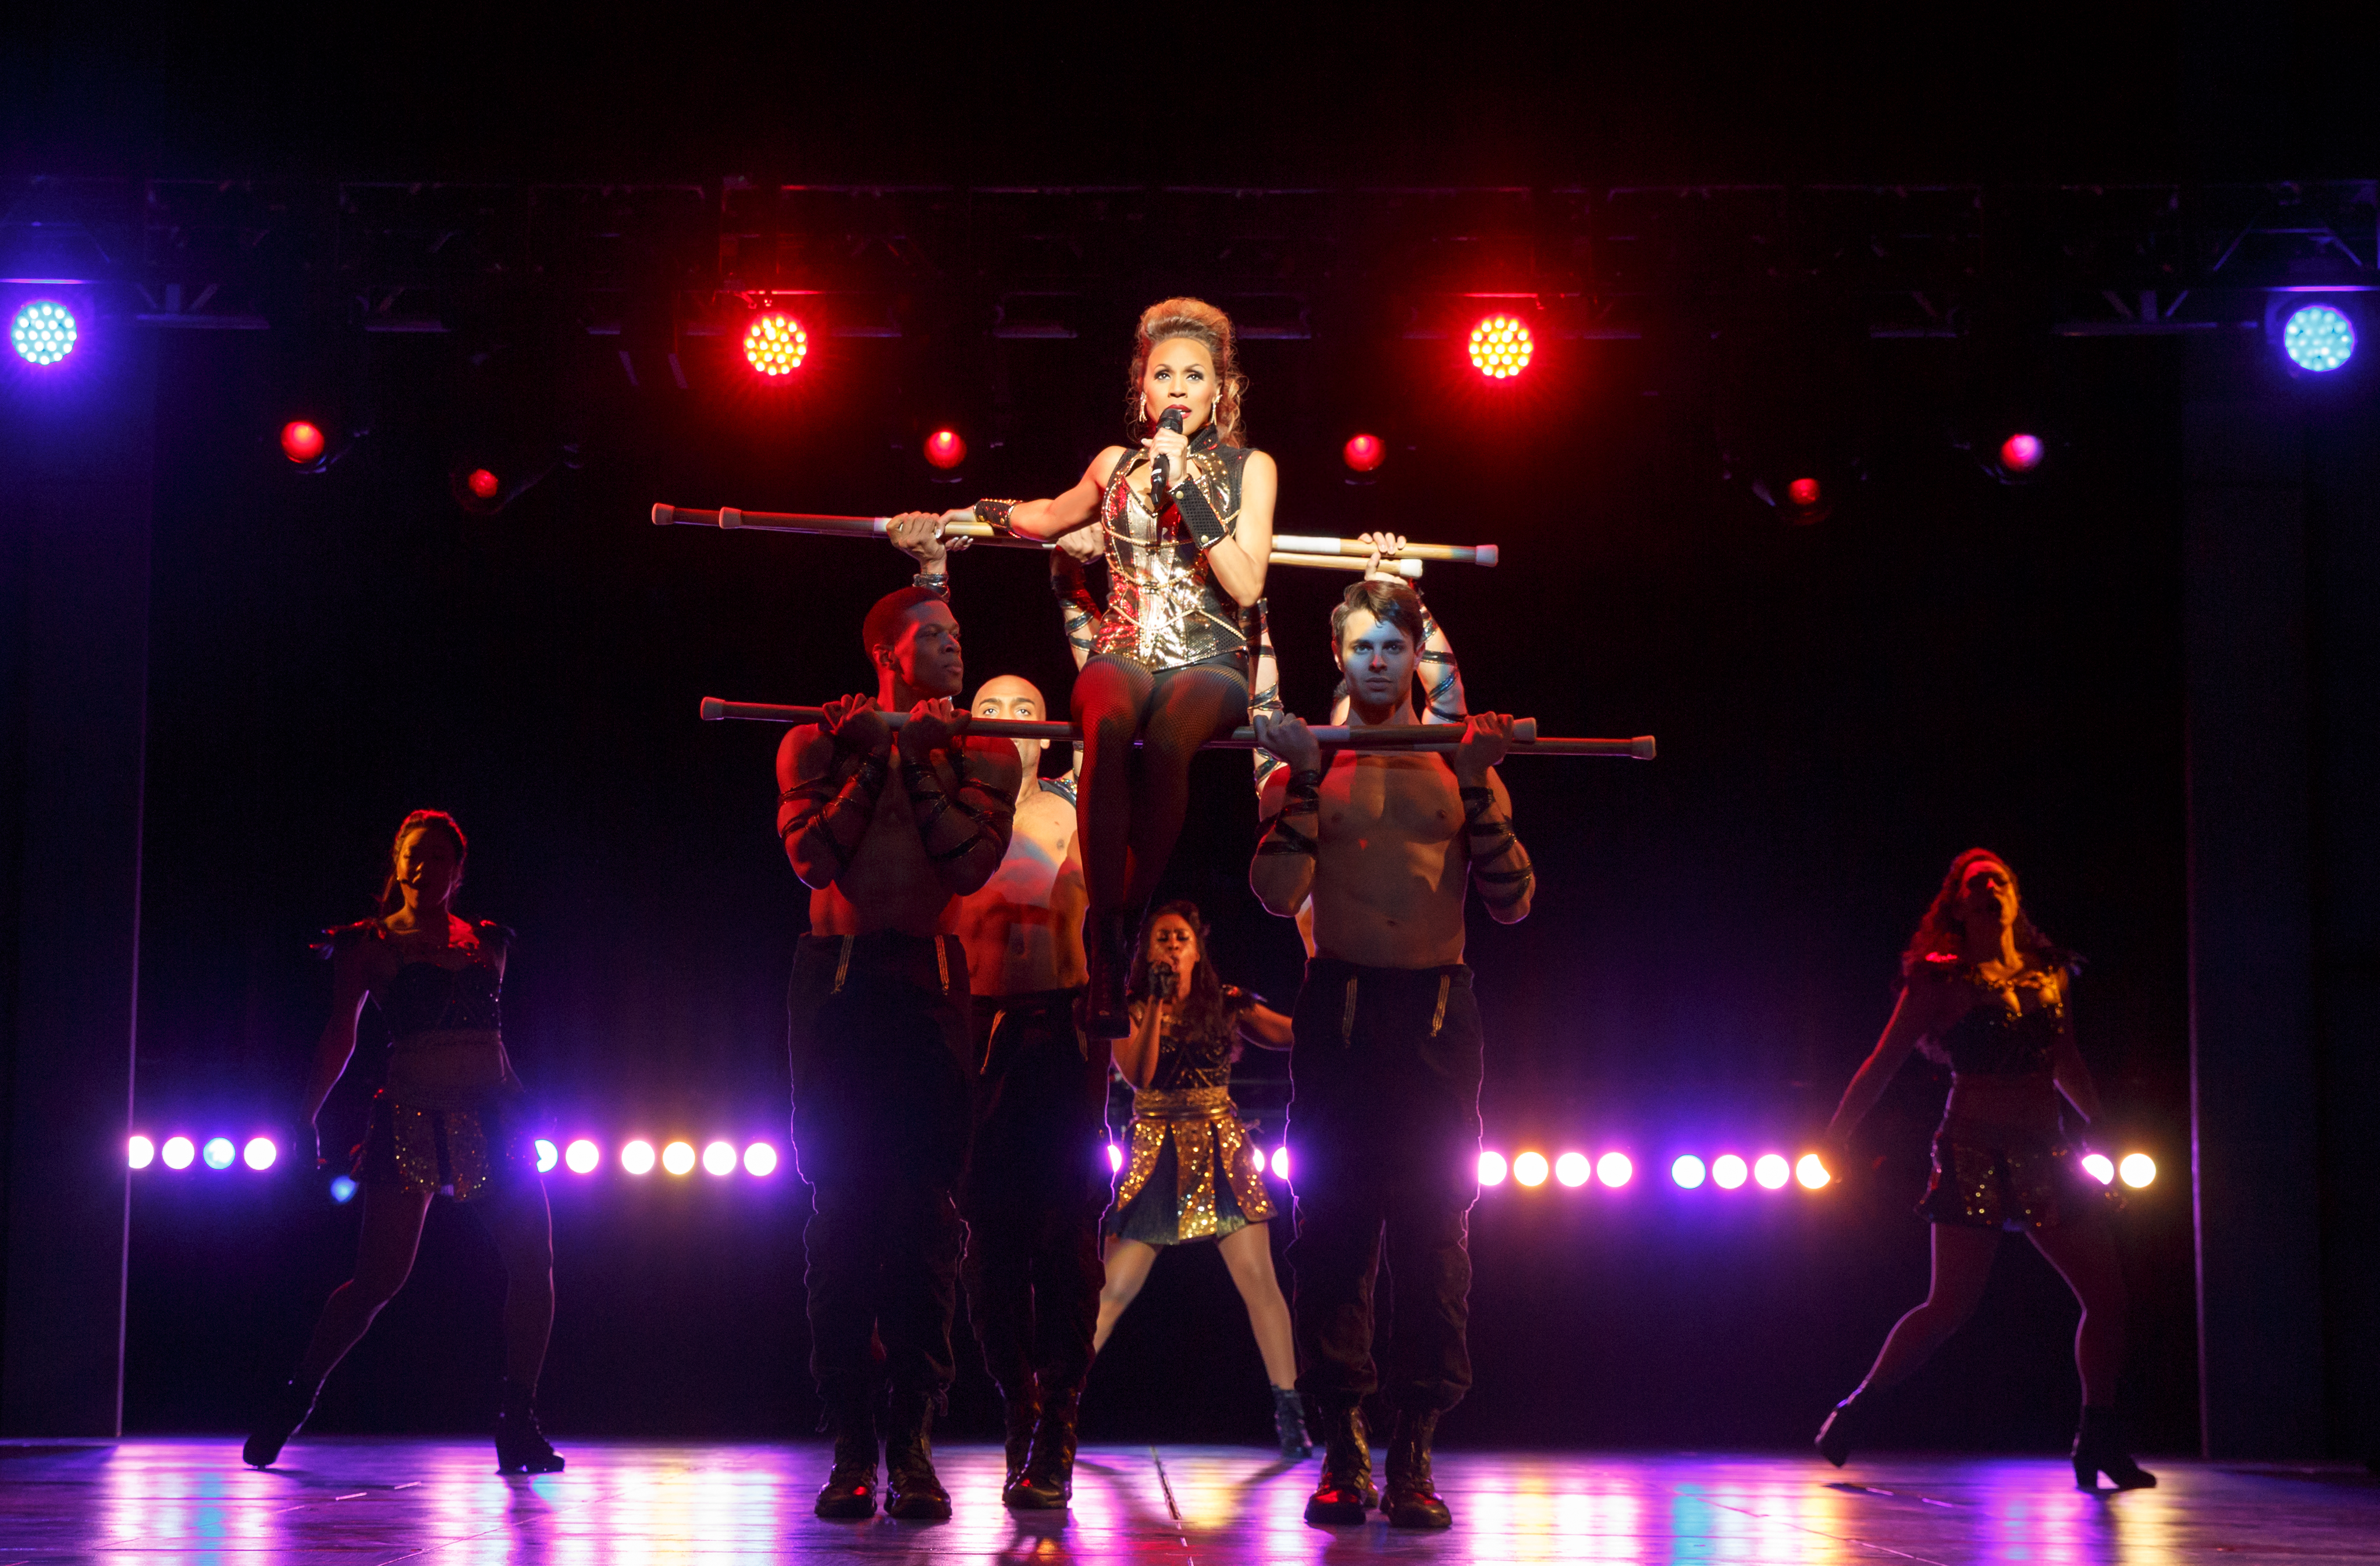 BWW Review: THE BODYGUARD National Tour at Dallas Summer Musicals